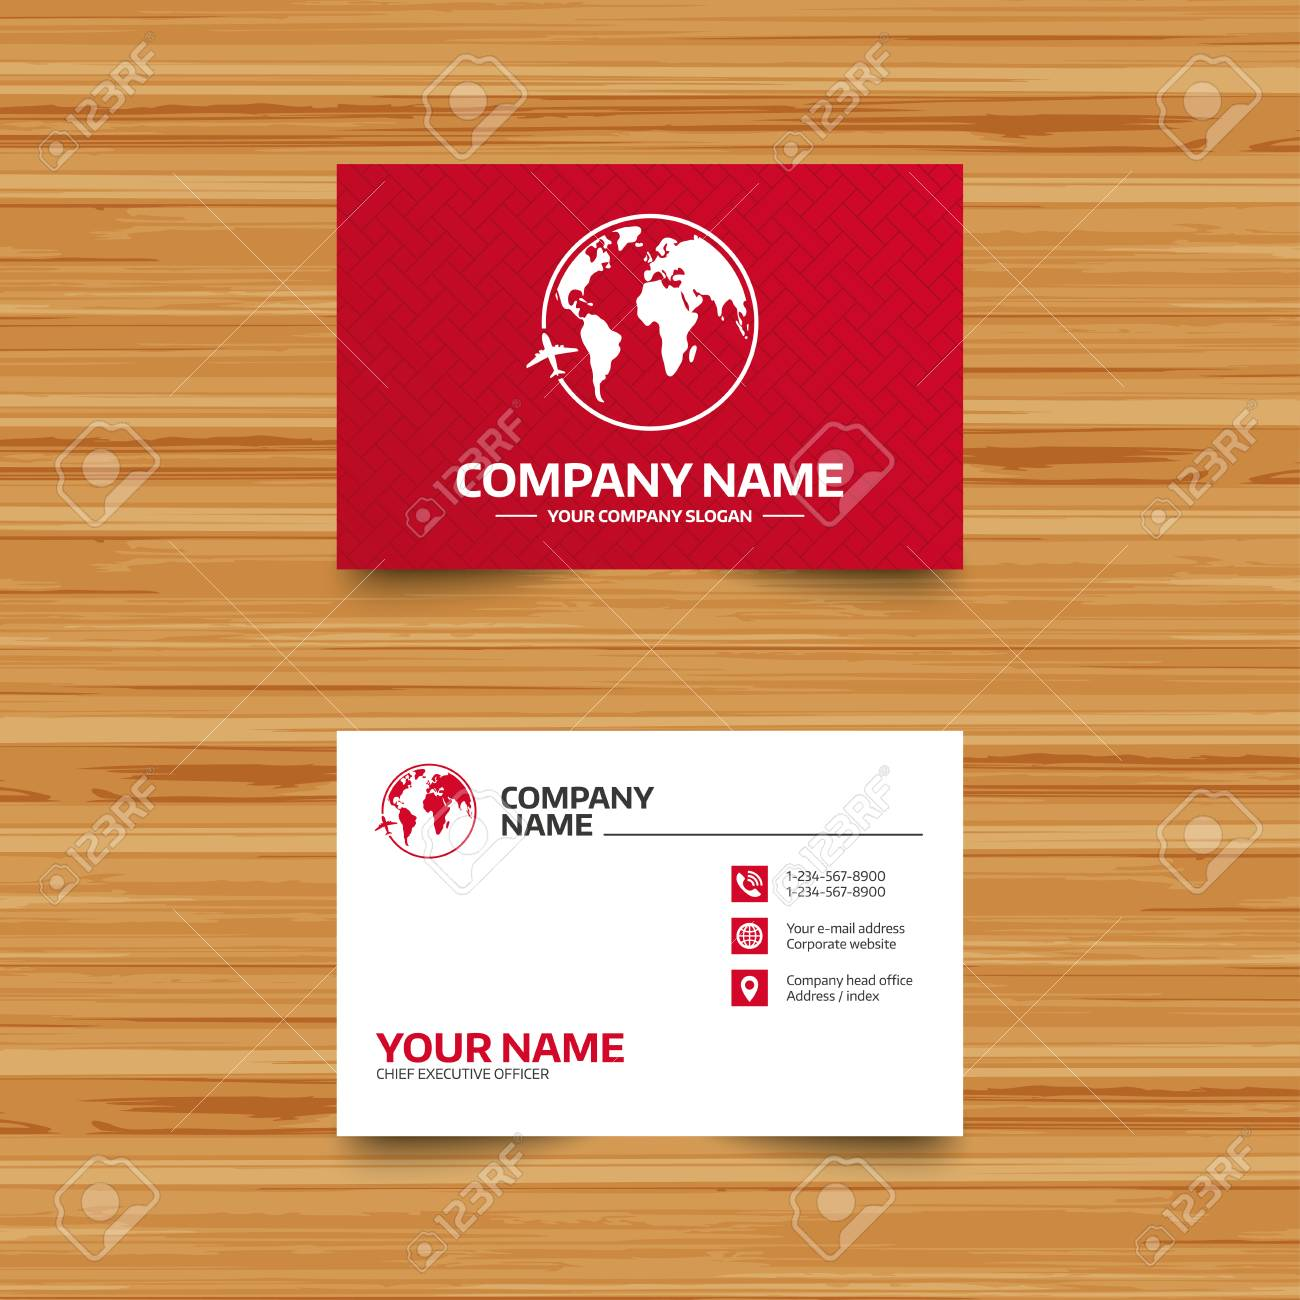 Business card template airplane sign icon travel trip round business card template airplane sign icon travel trip round the world symbol phone fbccfo Gallery